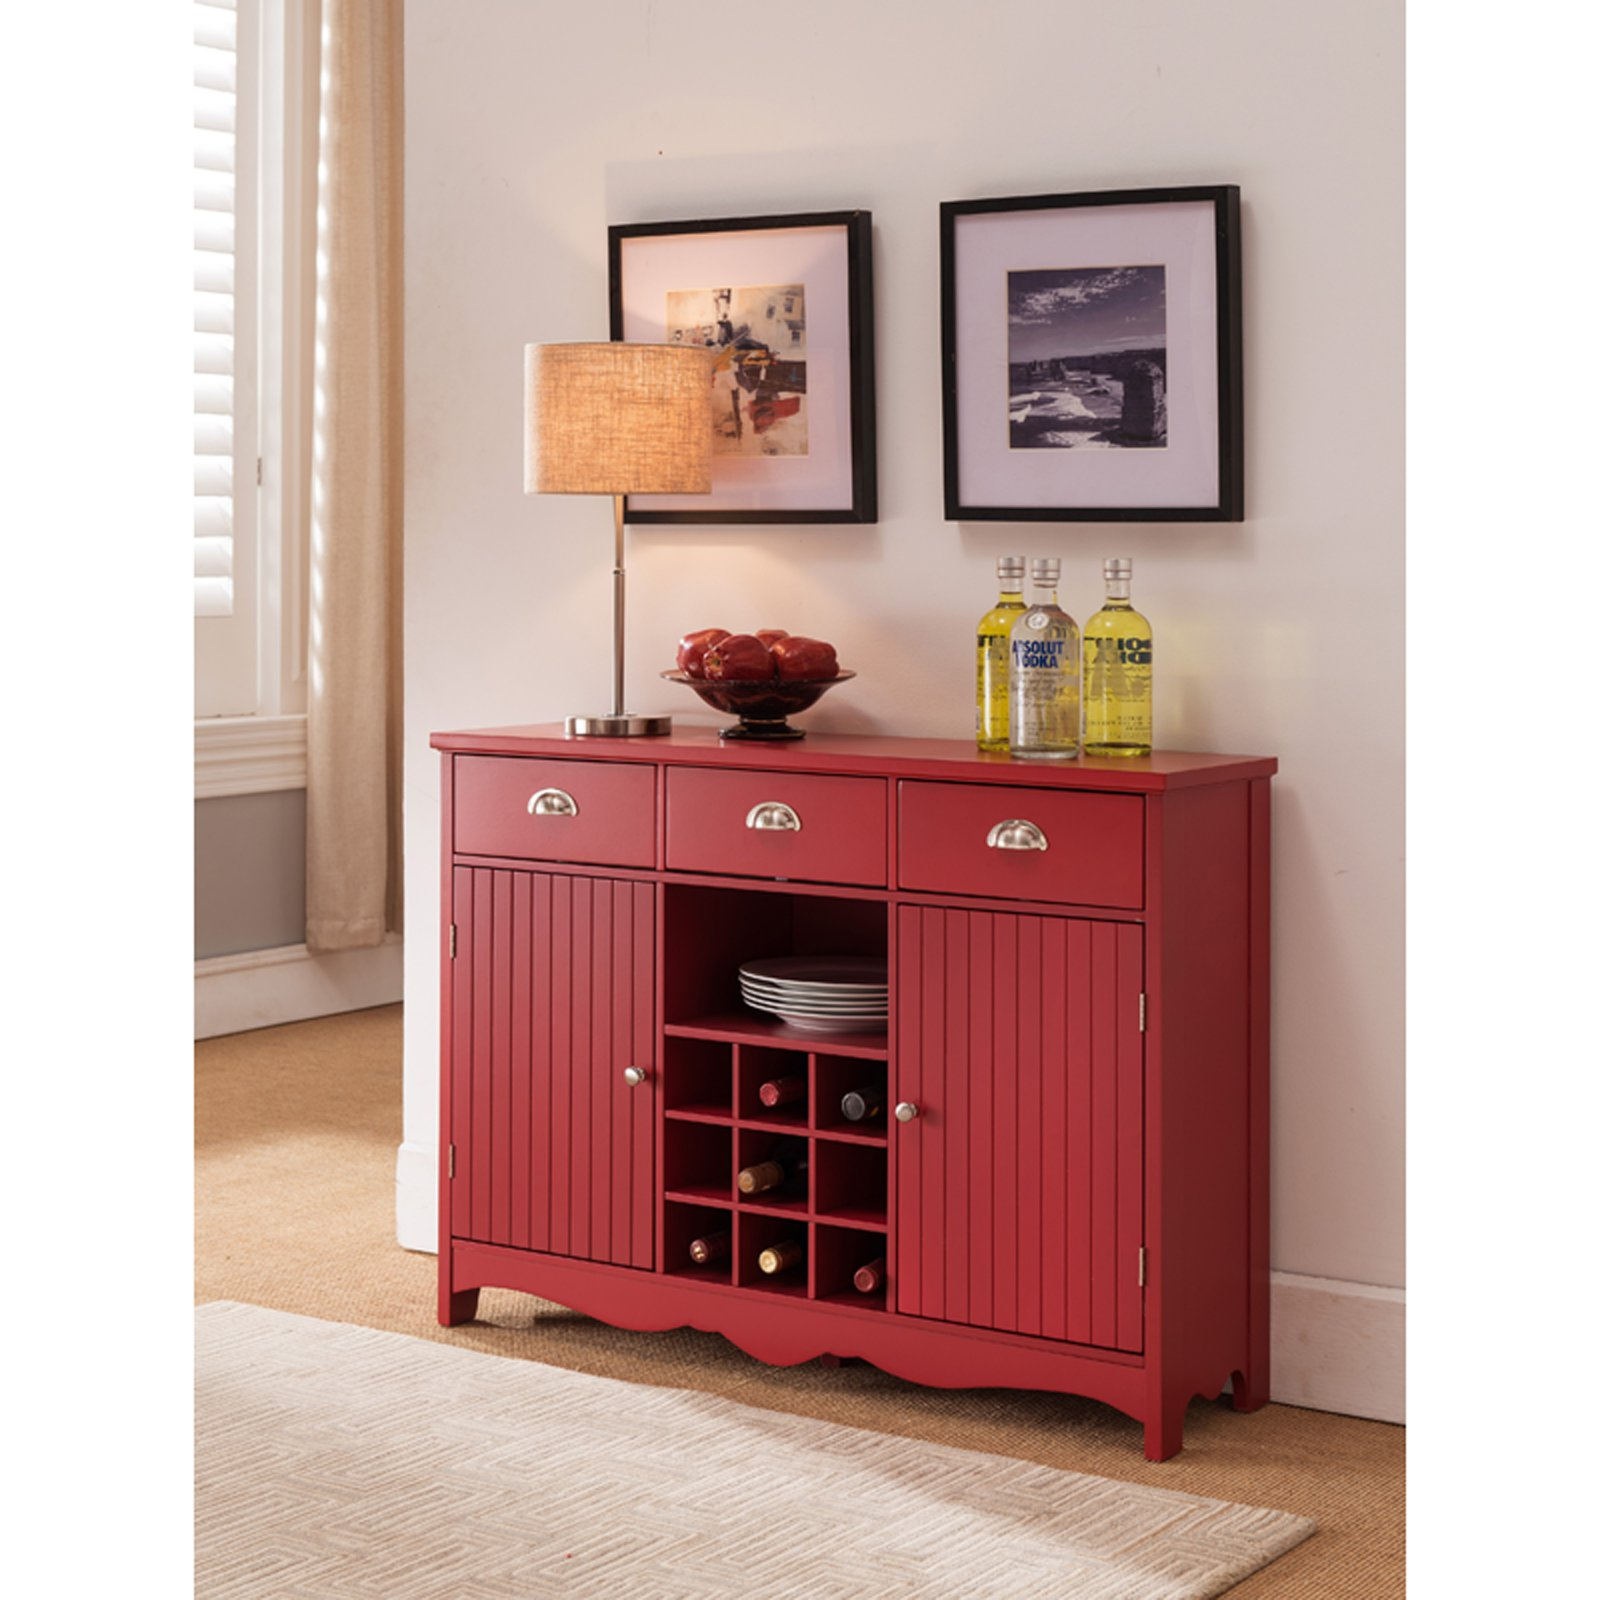 K B Furniture Red Wood 2 Door Wine Cabinet Wine Cabinets Contemporary Storage Cabinets Wooden Wine Cabinet